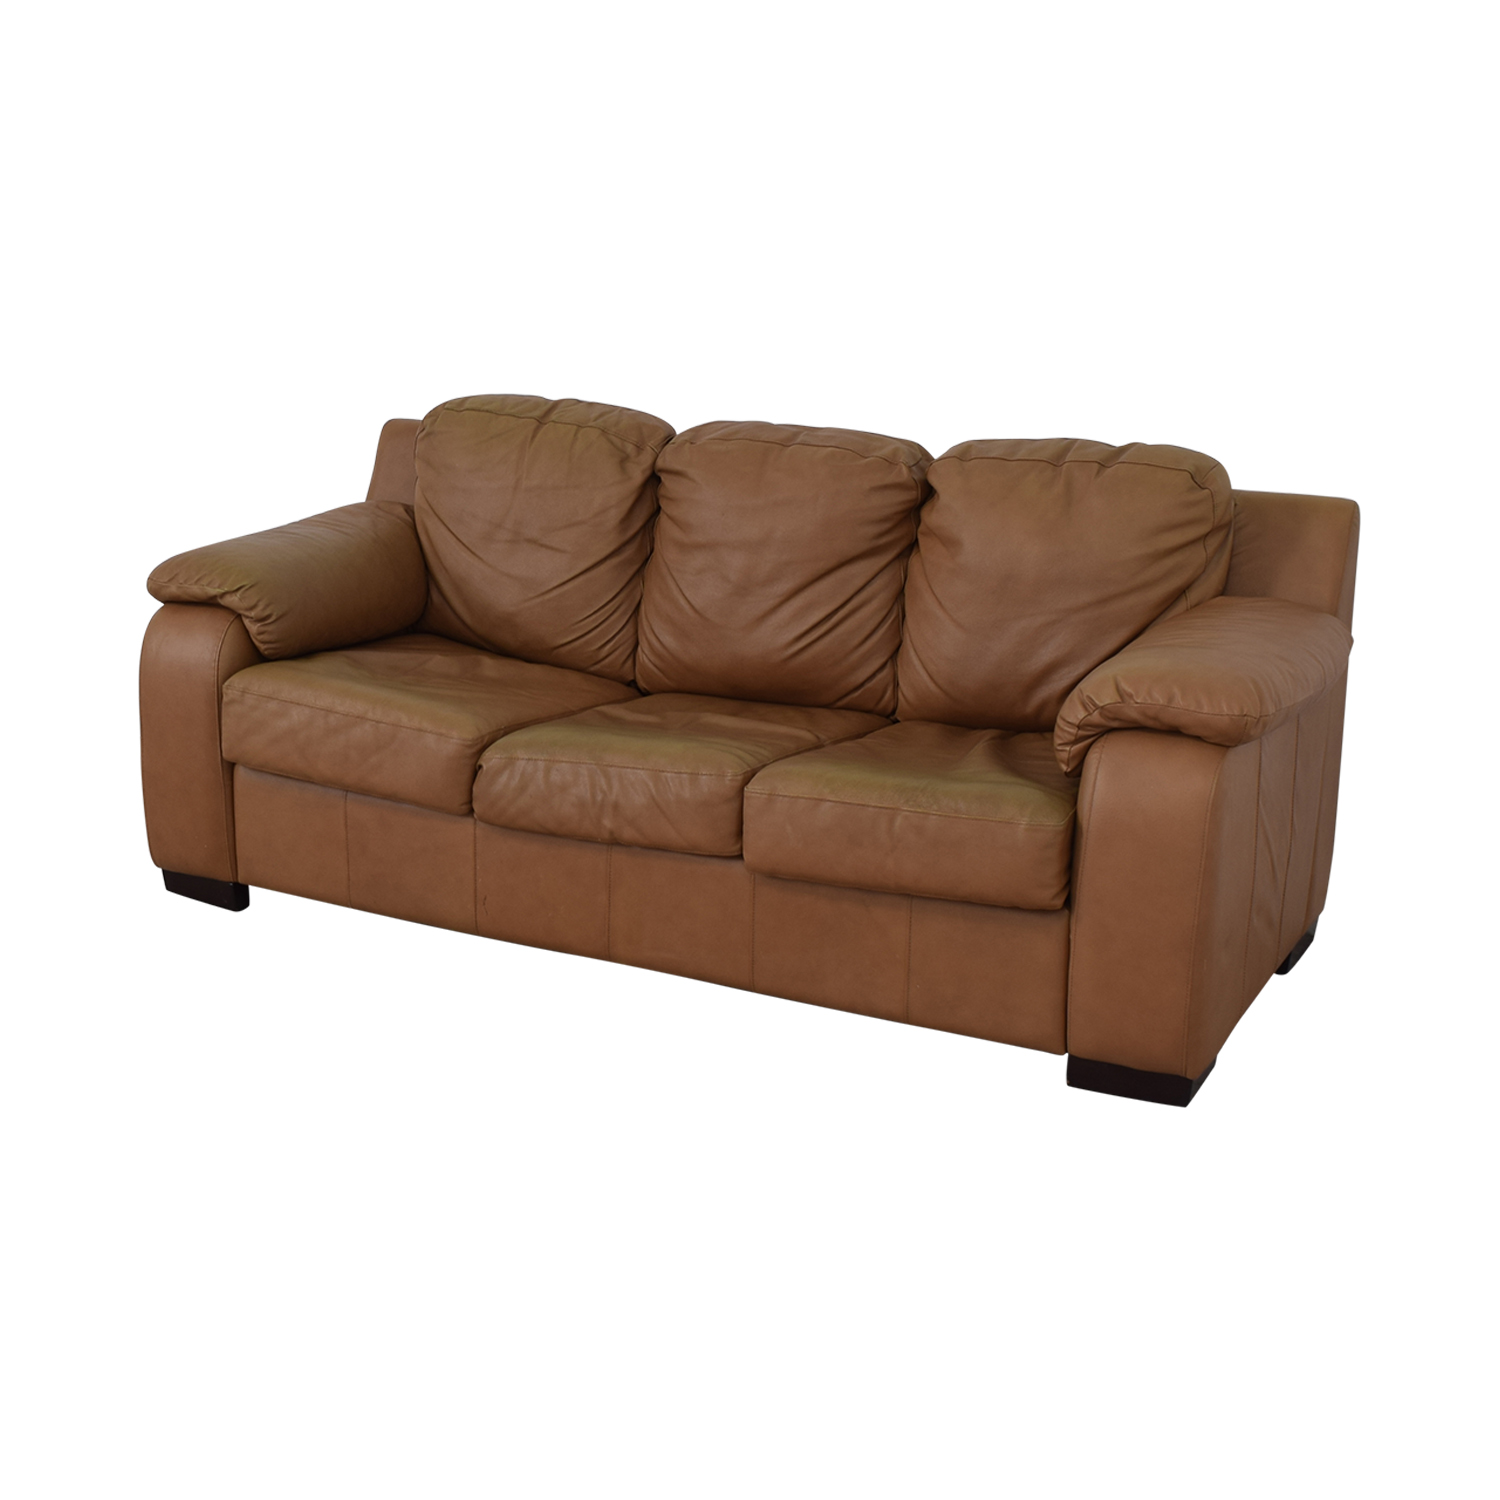 buy Jennifer Convertibles Cognac Three-Cushion Sofa with Pull-Out Full Convertible Jennifer Convertibles Sofas